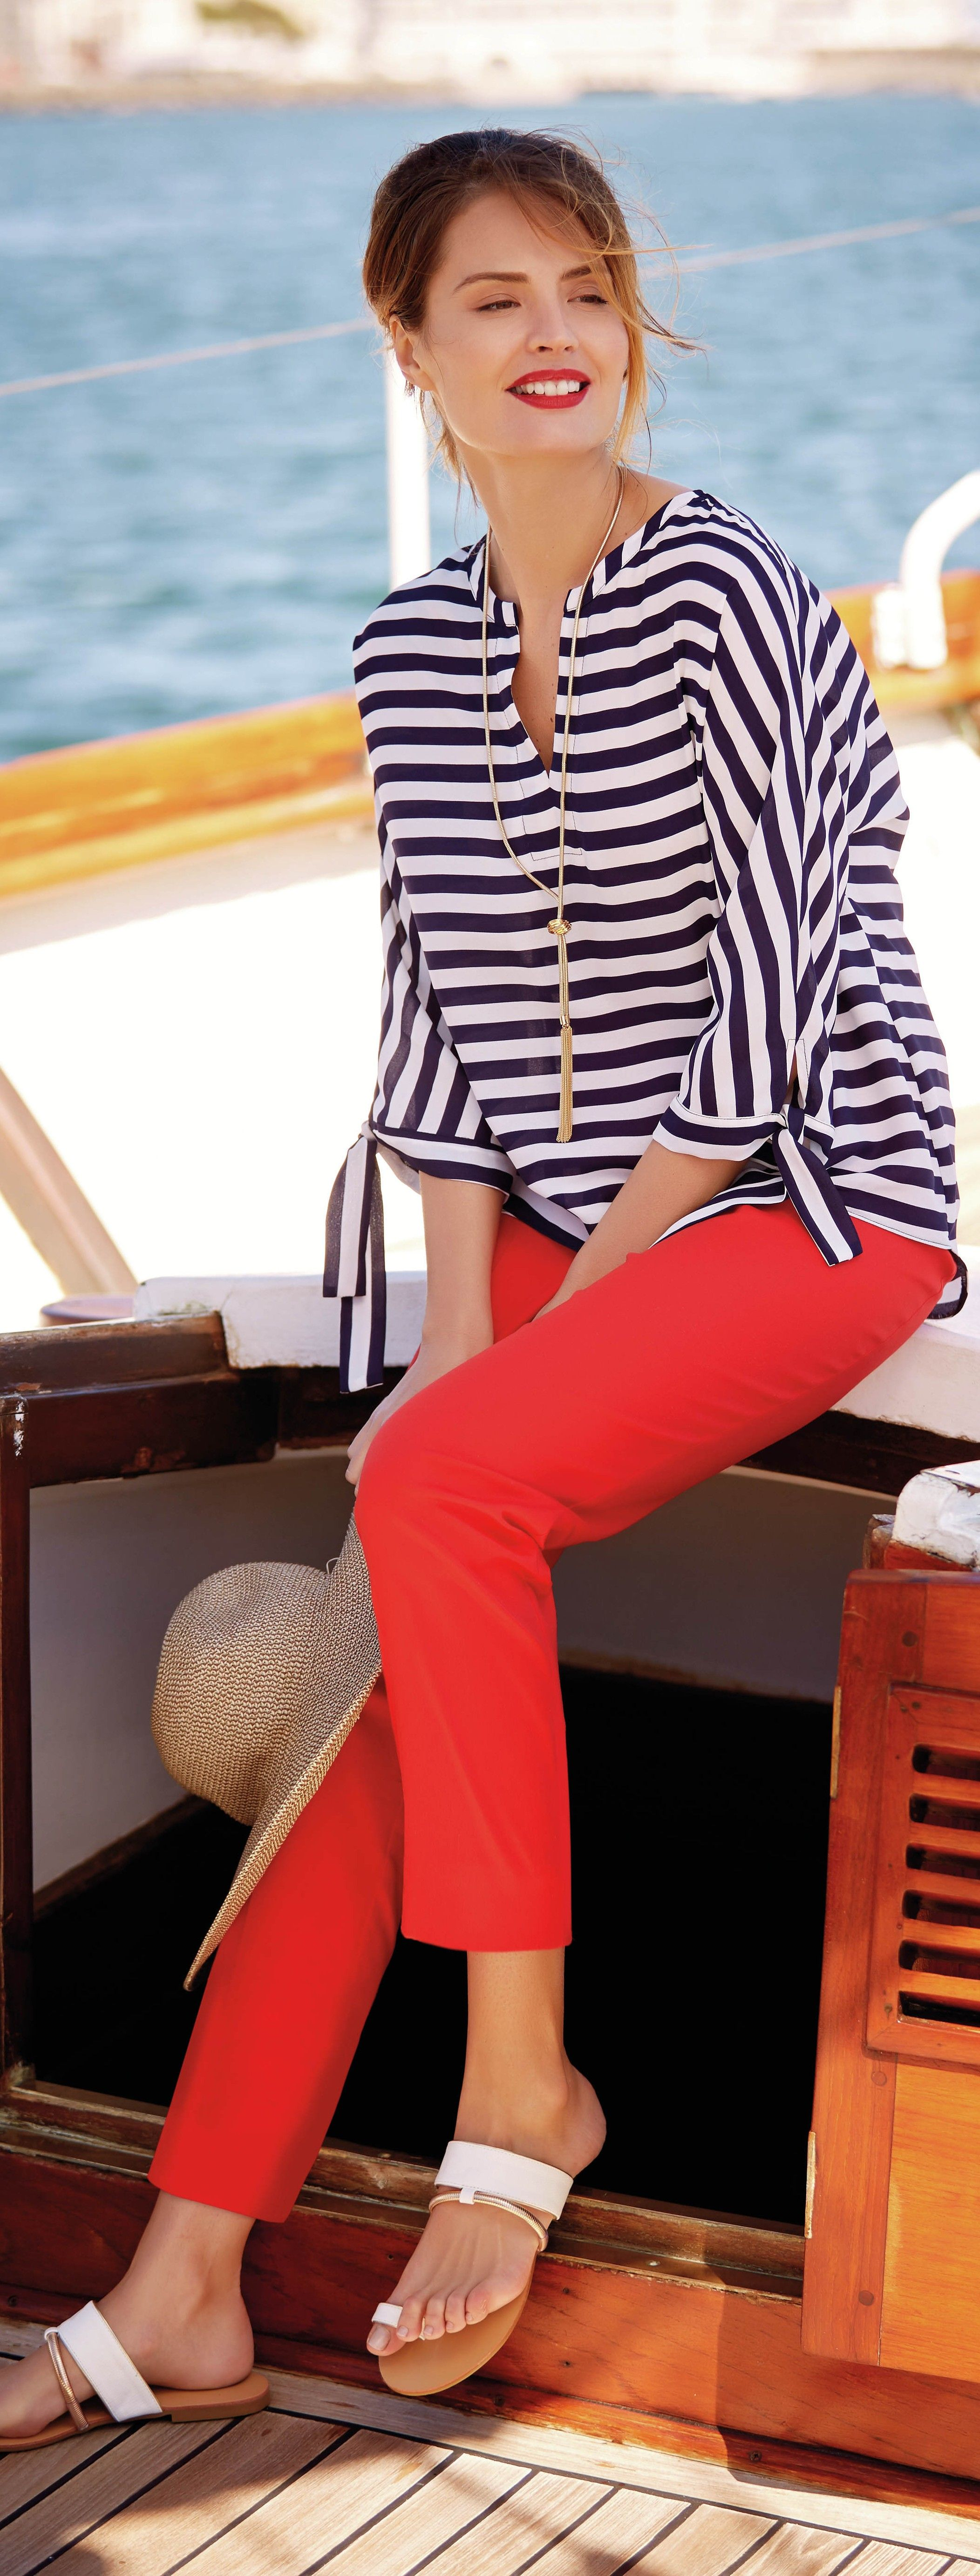 Cruise Wear for Women Over 50 - http//www.boomerinas.com/2013/02/12/cruise-clothing-nautical ...